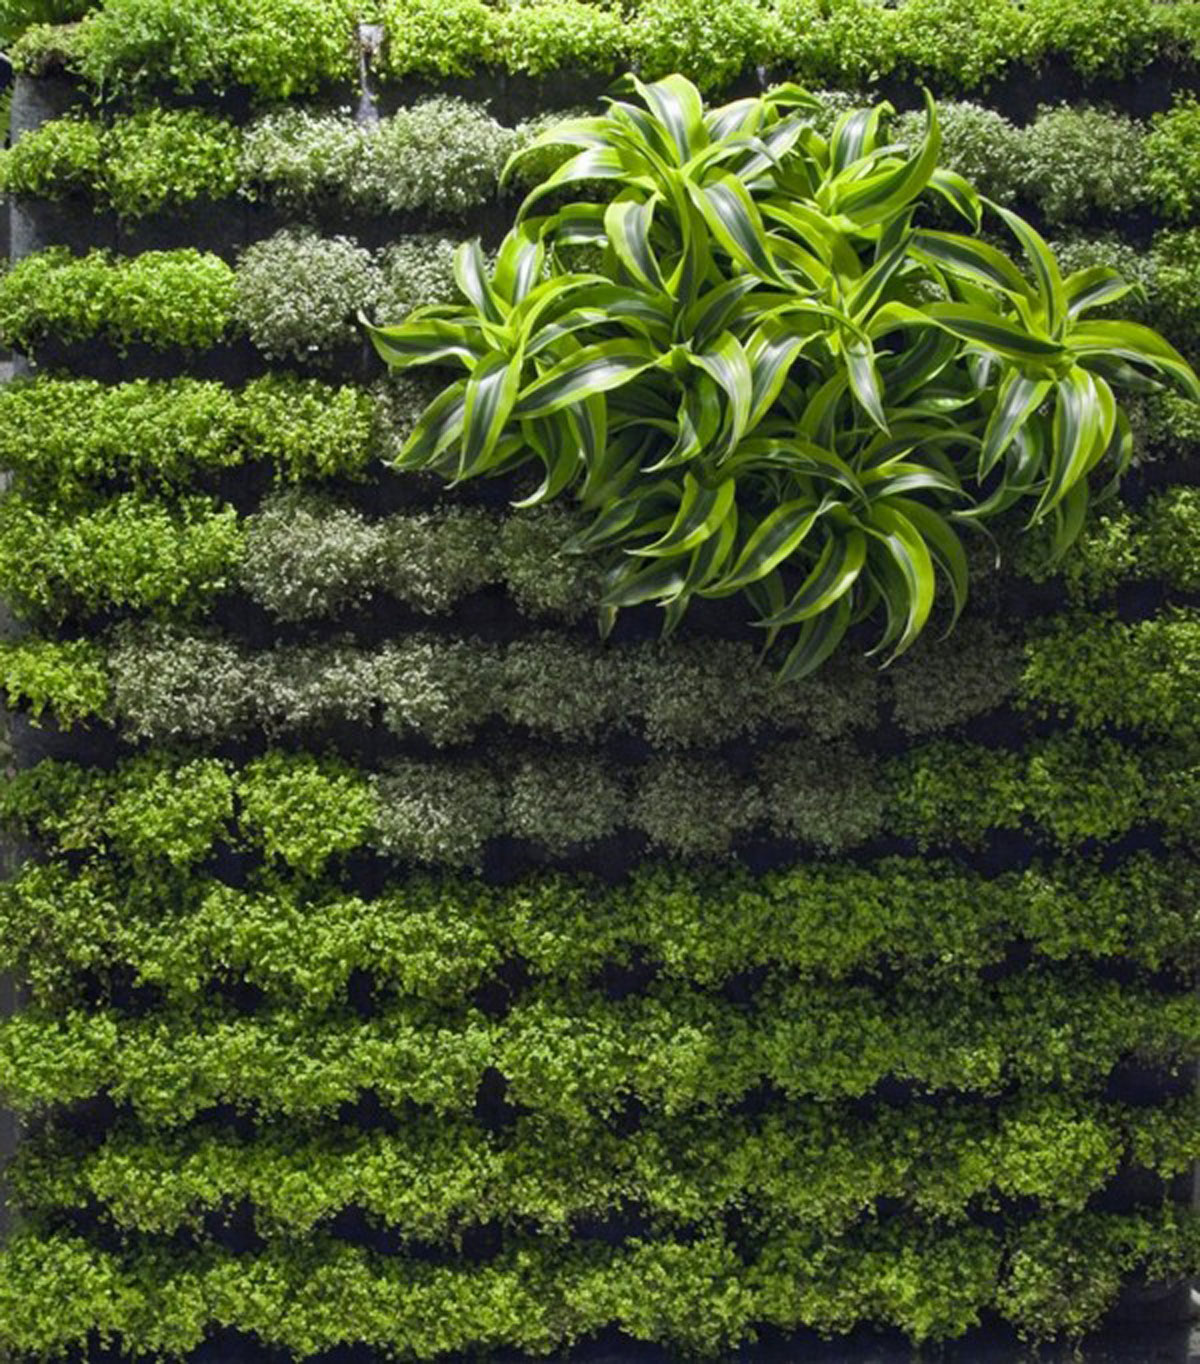 Applicative vertical garden designs for Vertical garden design